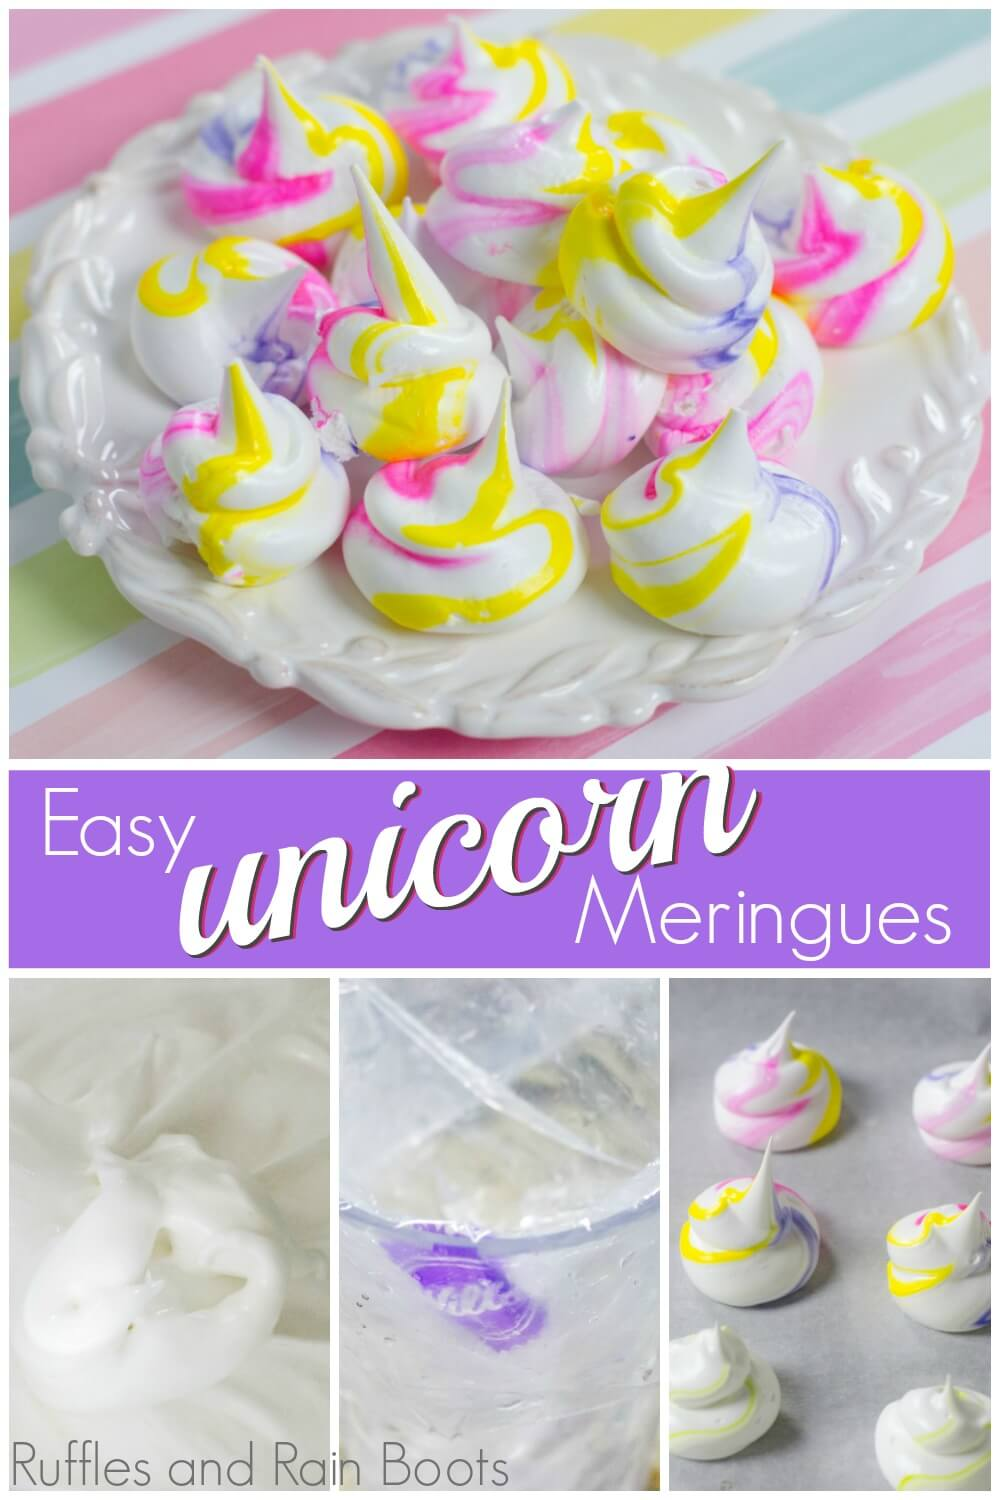 photo collage showing close up of unicorn meringues and step by step pictures of ingredients with text East unicorn meringues